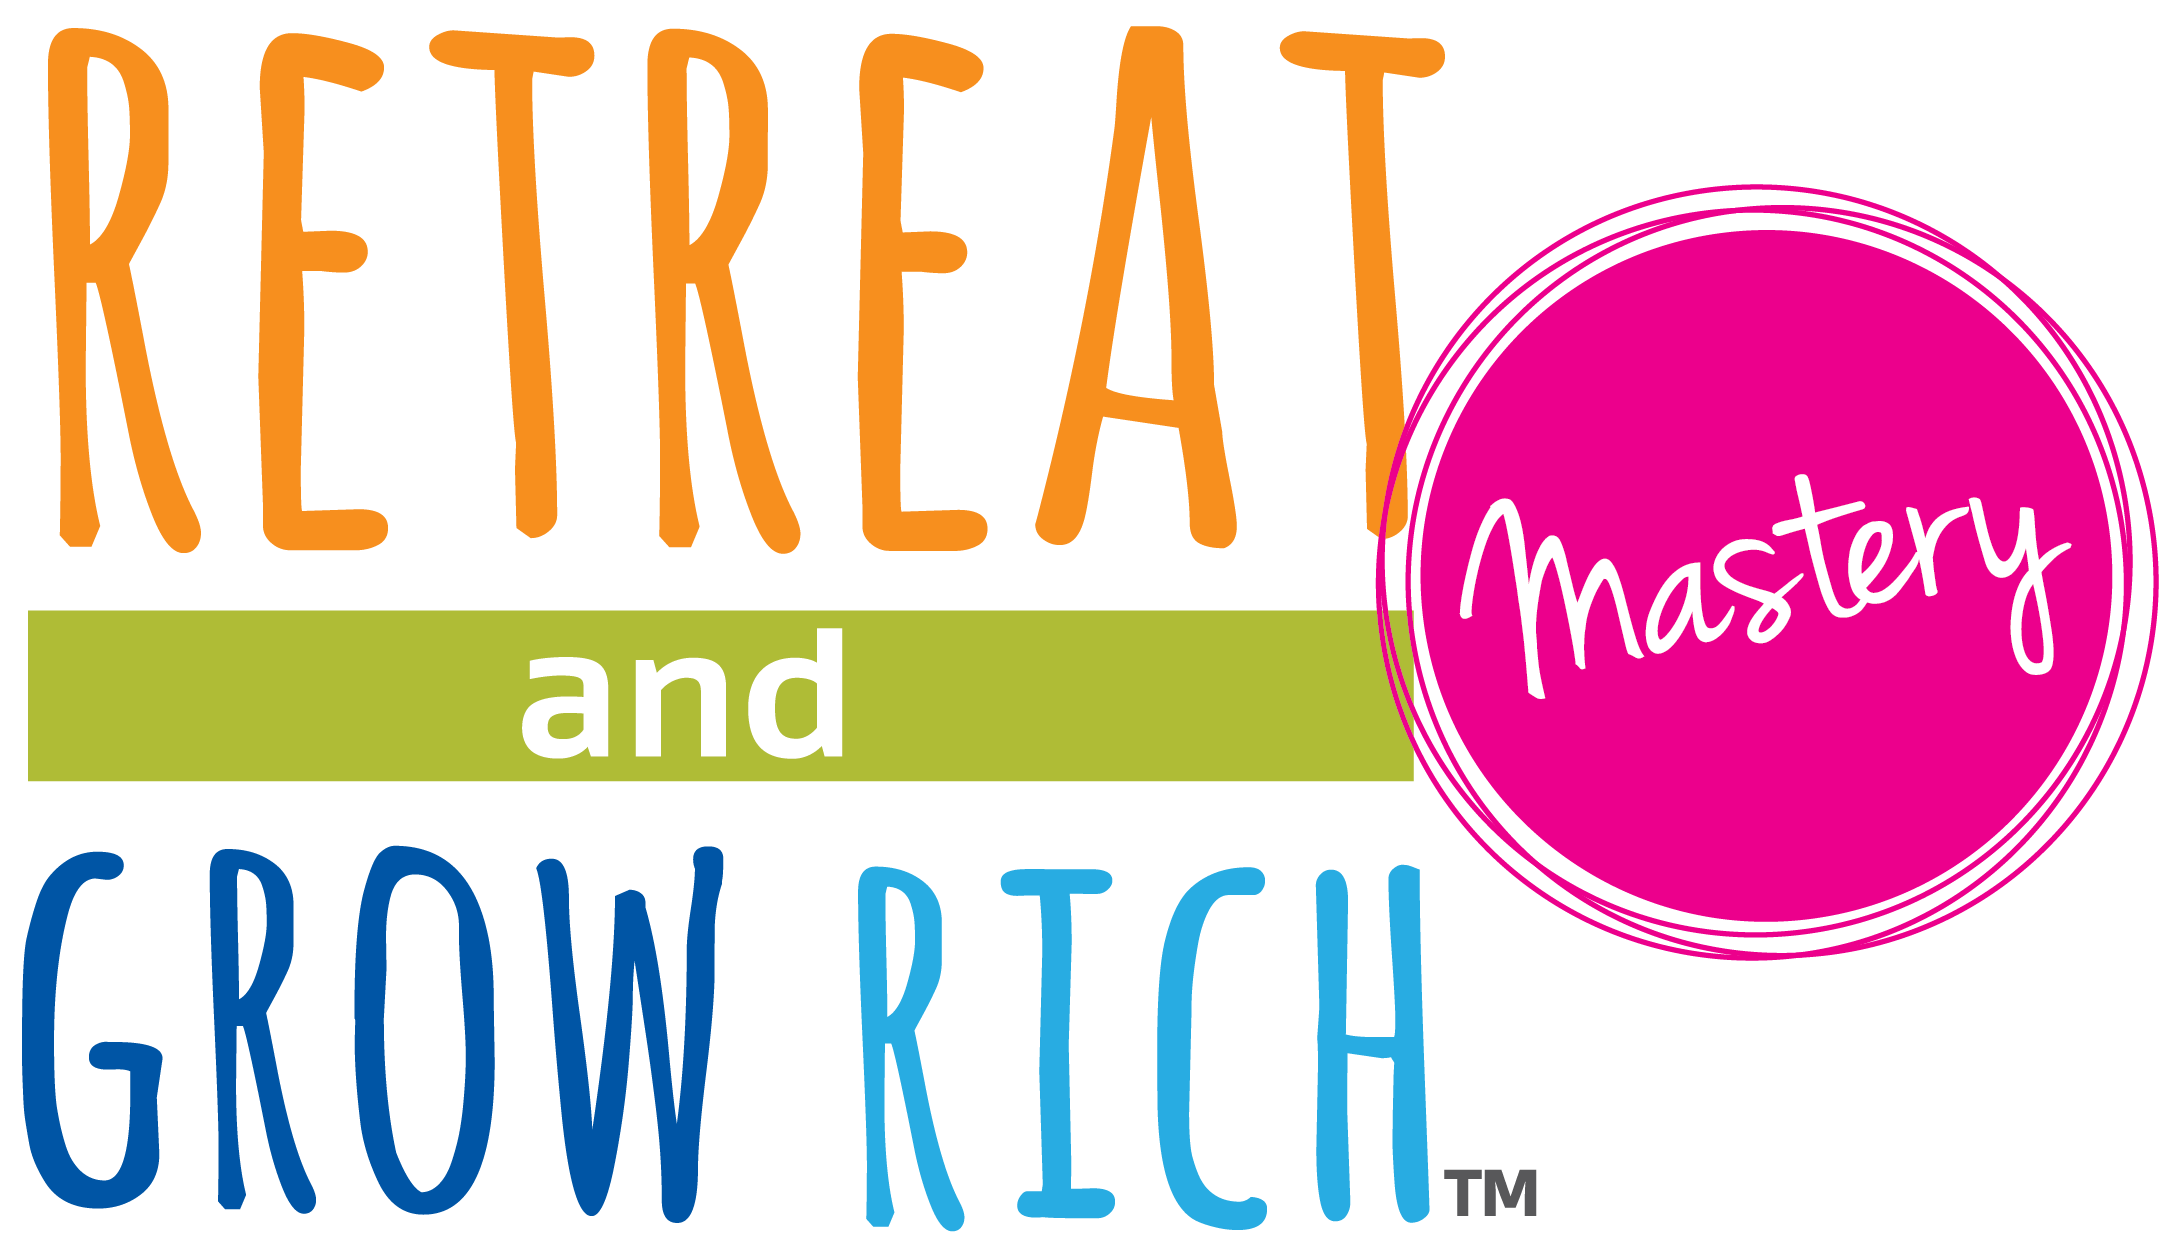 Retreat and Grow Rich Mastery